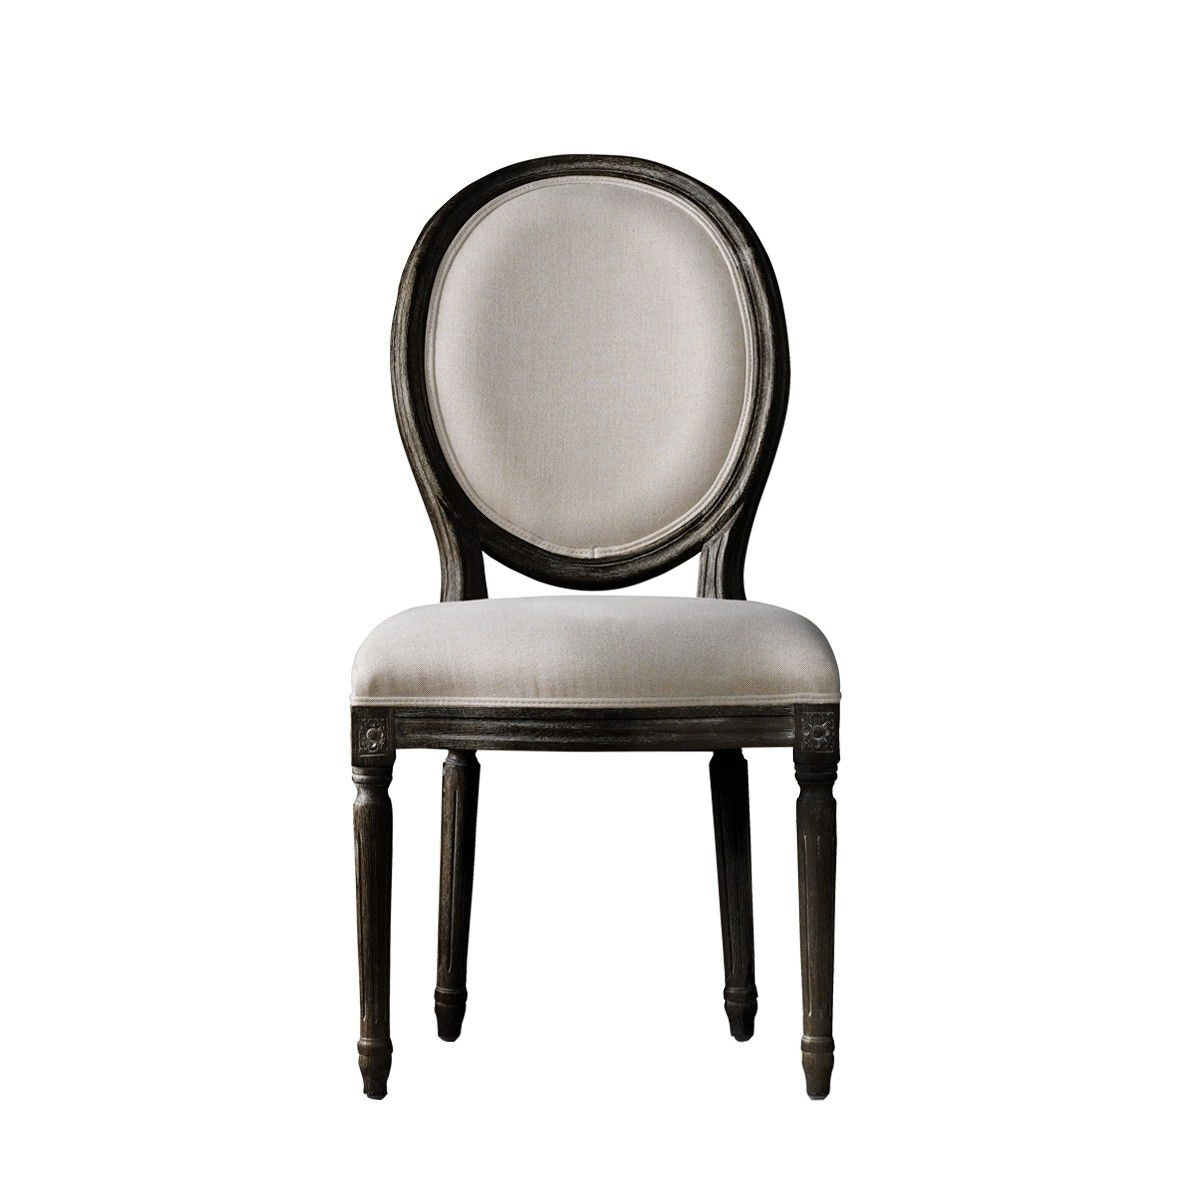 Attirant Curations Limited Vintage Louis Antique Black Side Chair 8827.0004